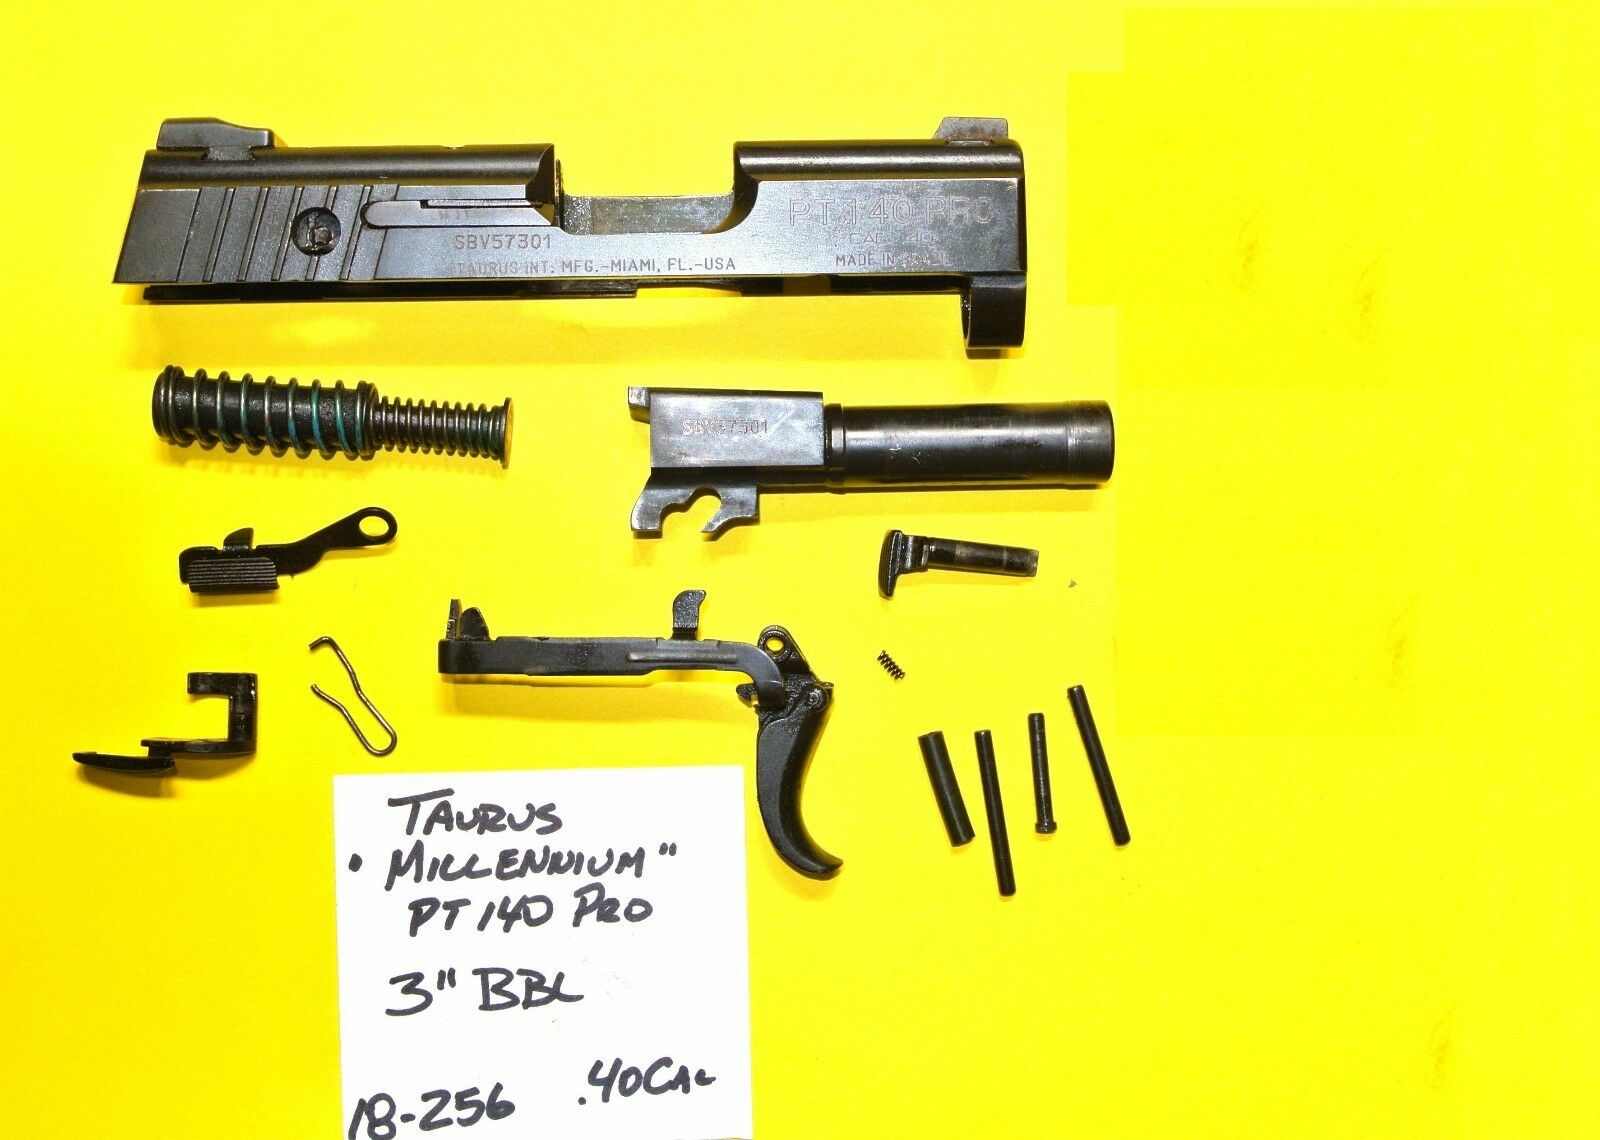 Taurus Gun Replacement Parts 25 Acp Schematic Pro Lot All Pictured One Price 1600x1140